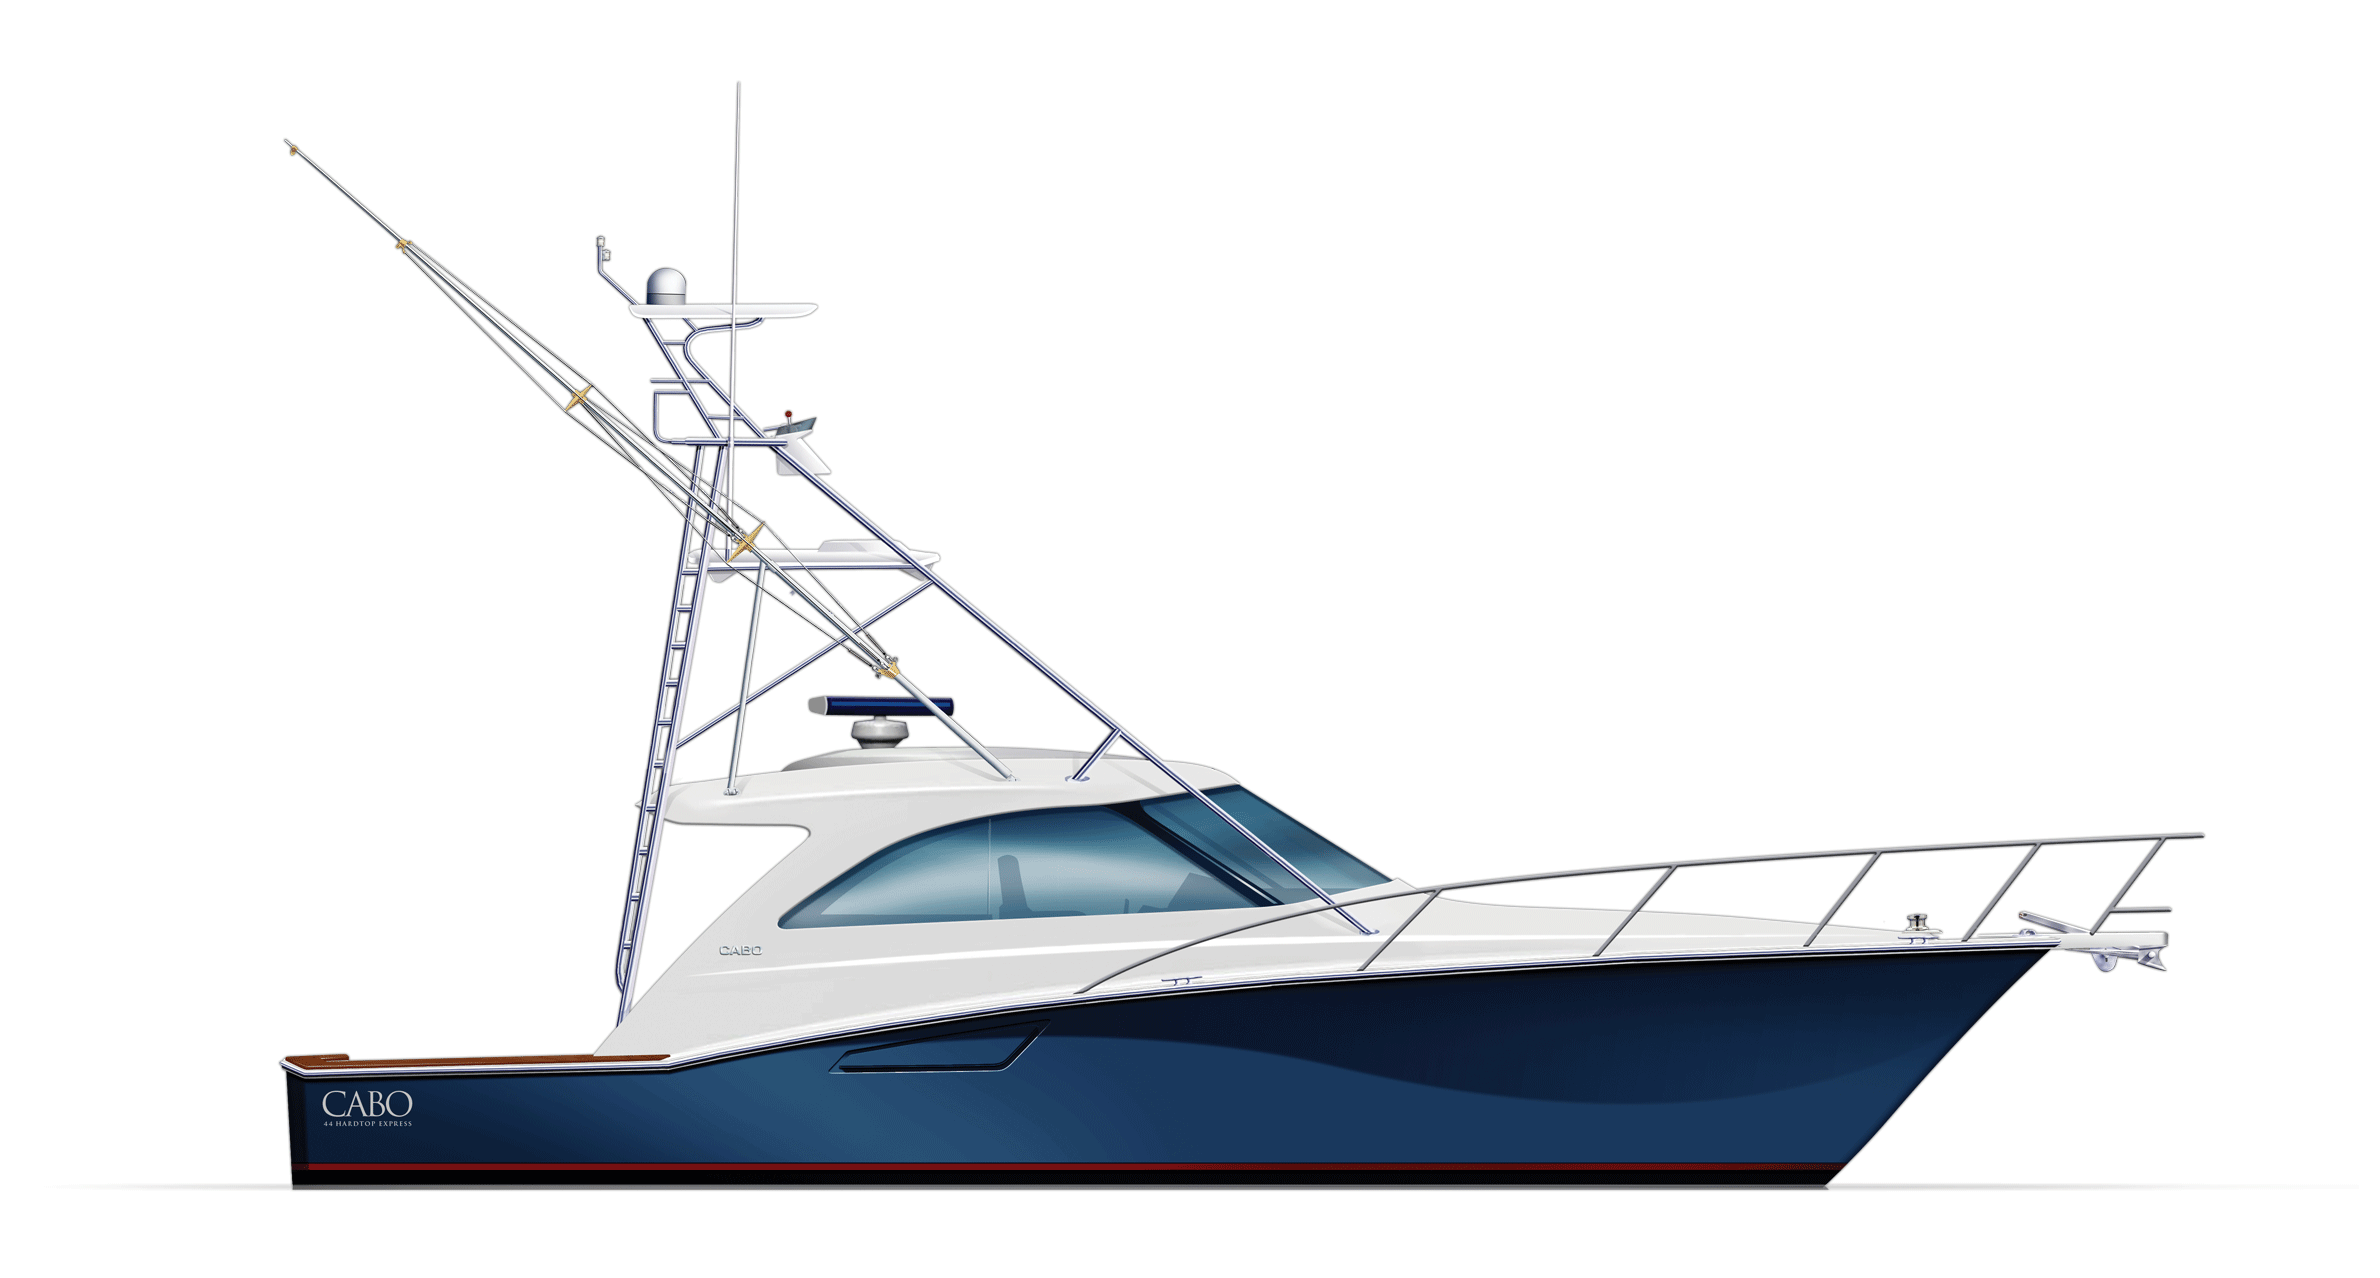 White Boat PNG Image